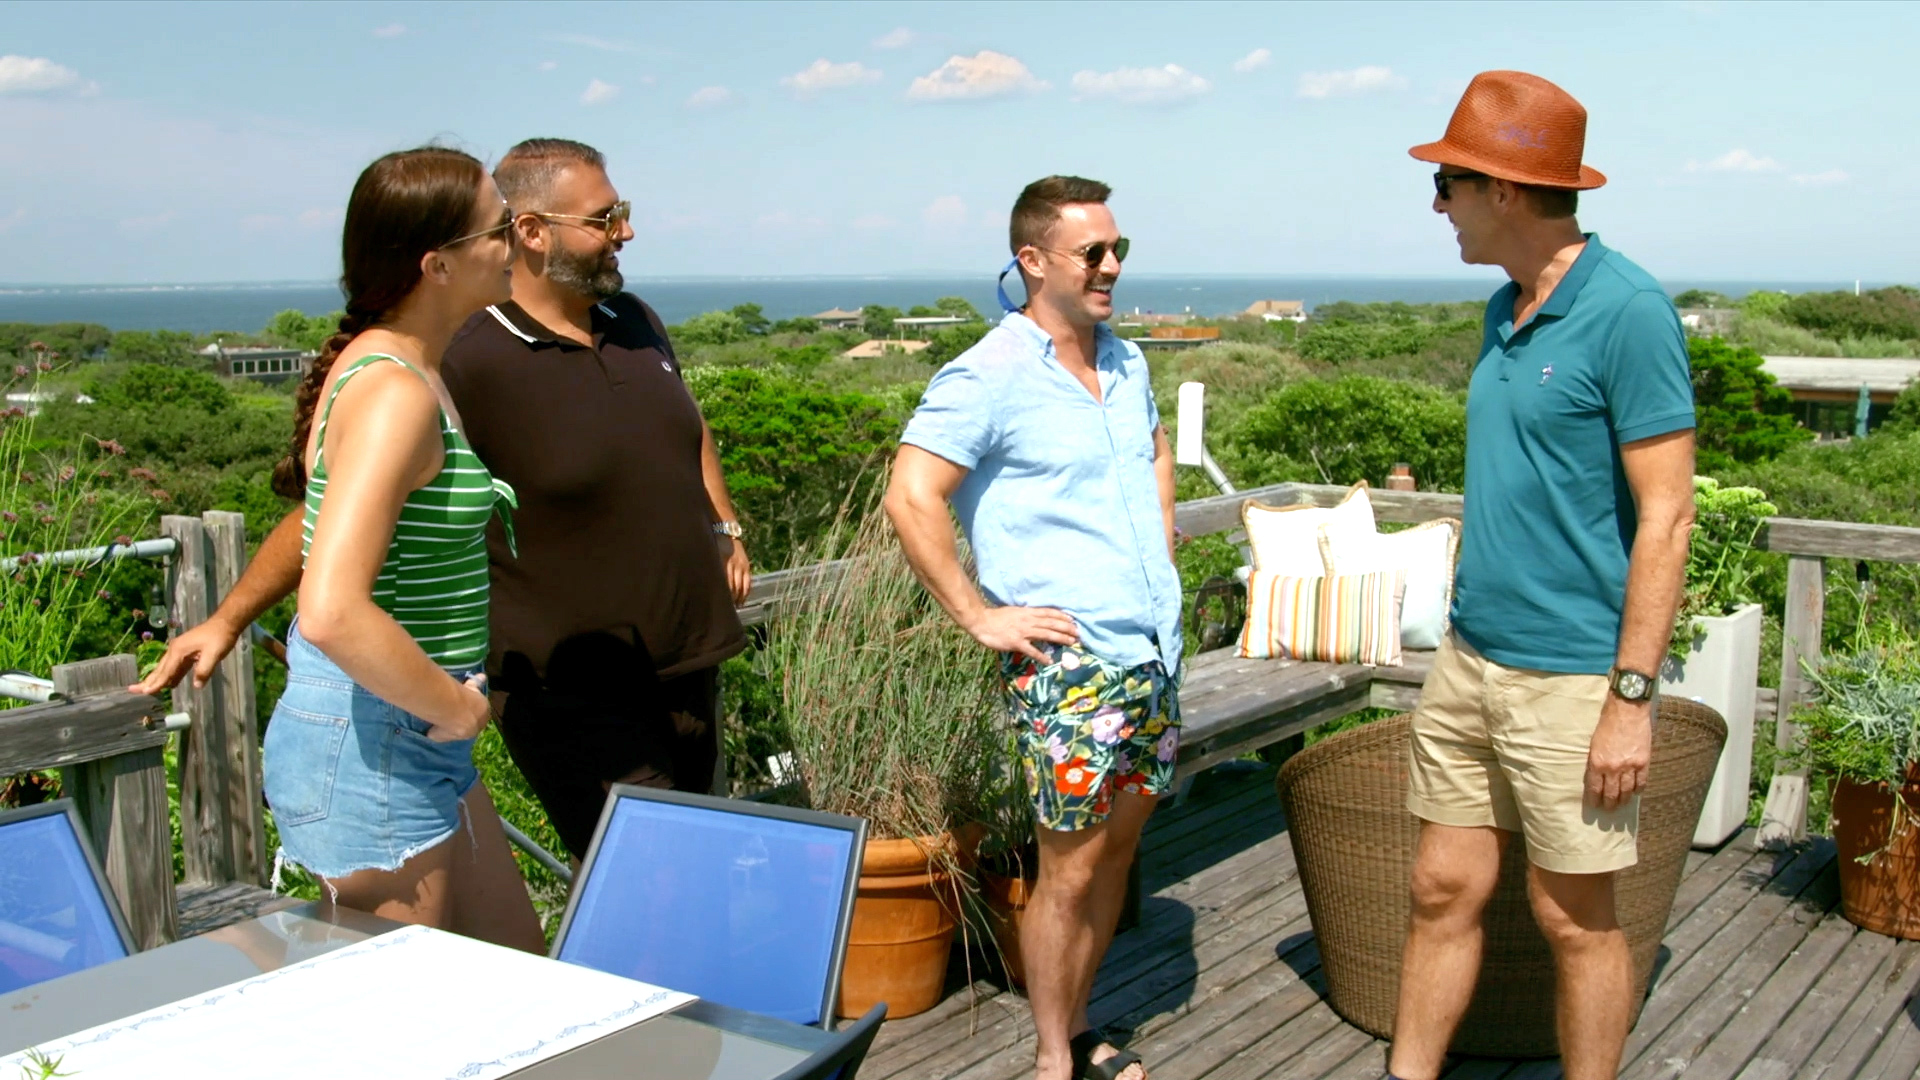 The Manscapers Create a Charming Seaside Oasis on Fire Island